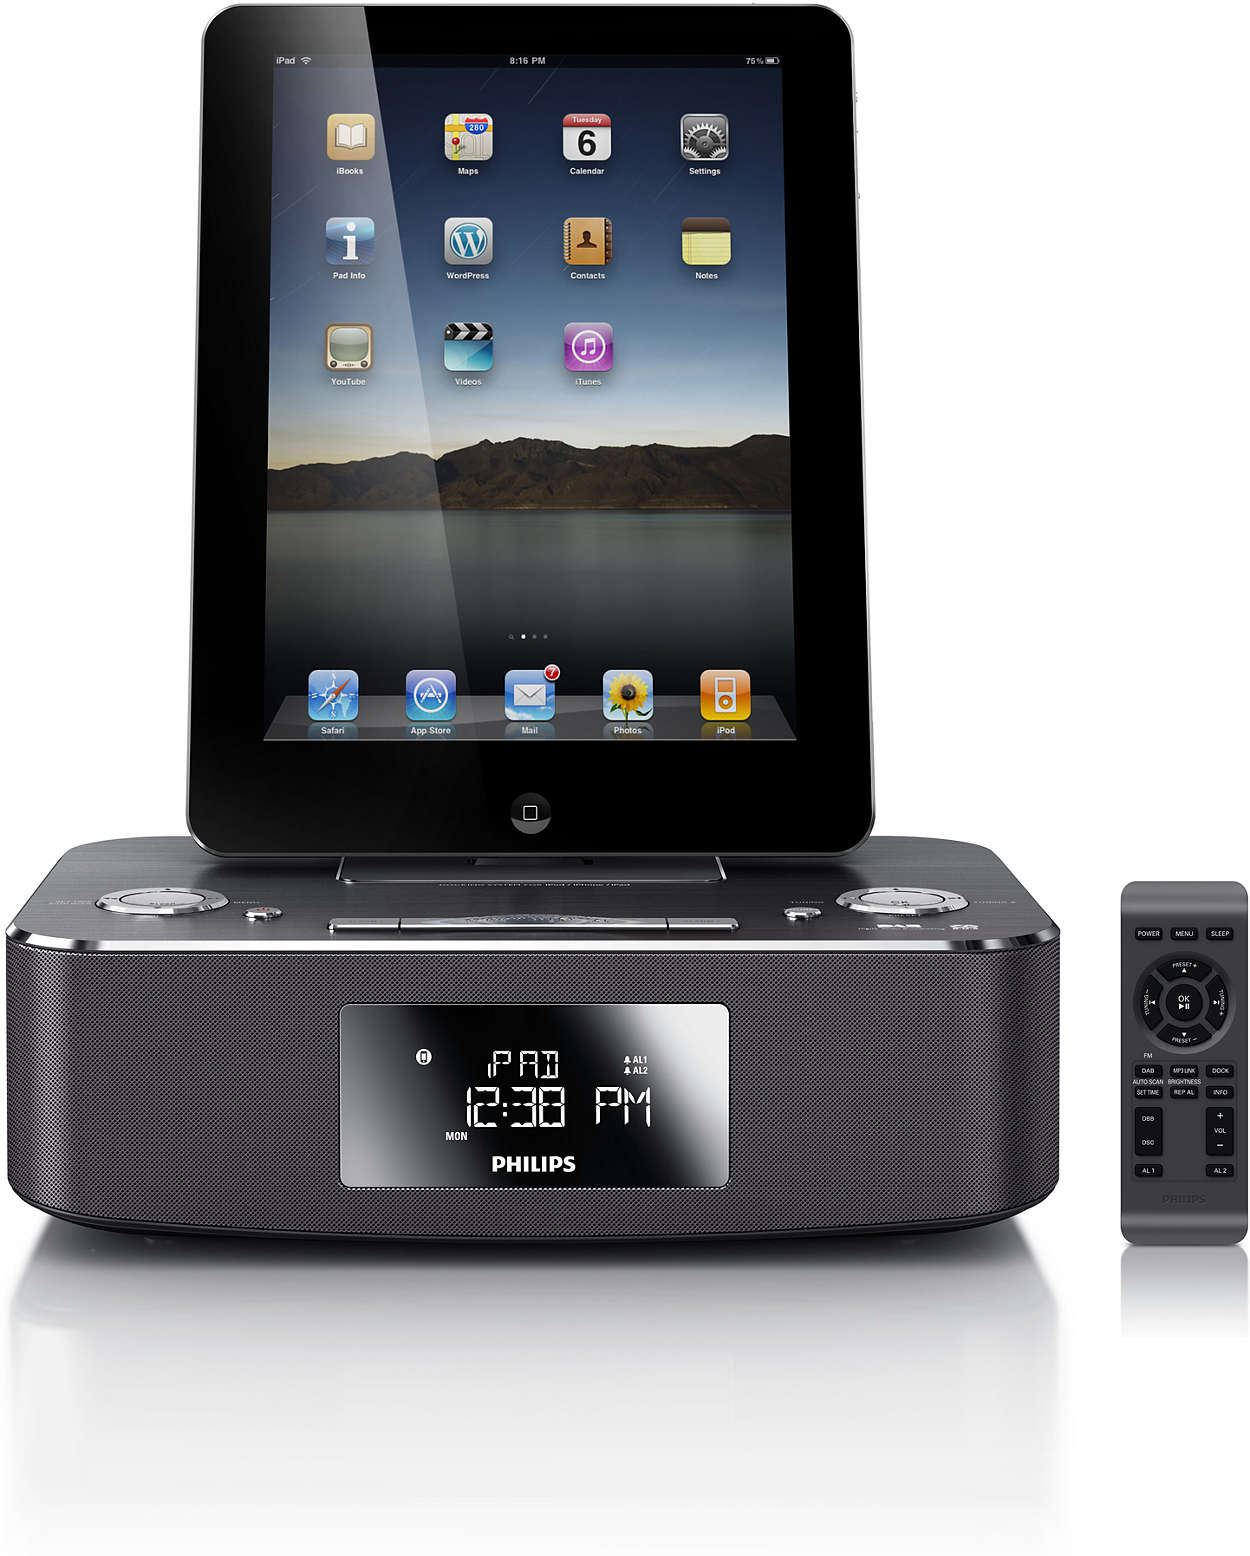 docking station for ipod iphone ipad dcb291 12 philips. Black Bedroom Furniture Sets. Home Design Ideas